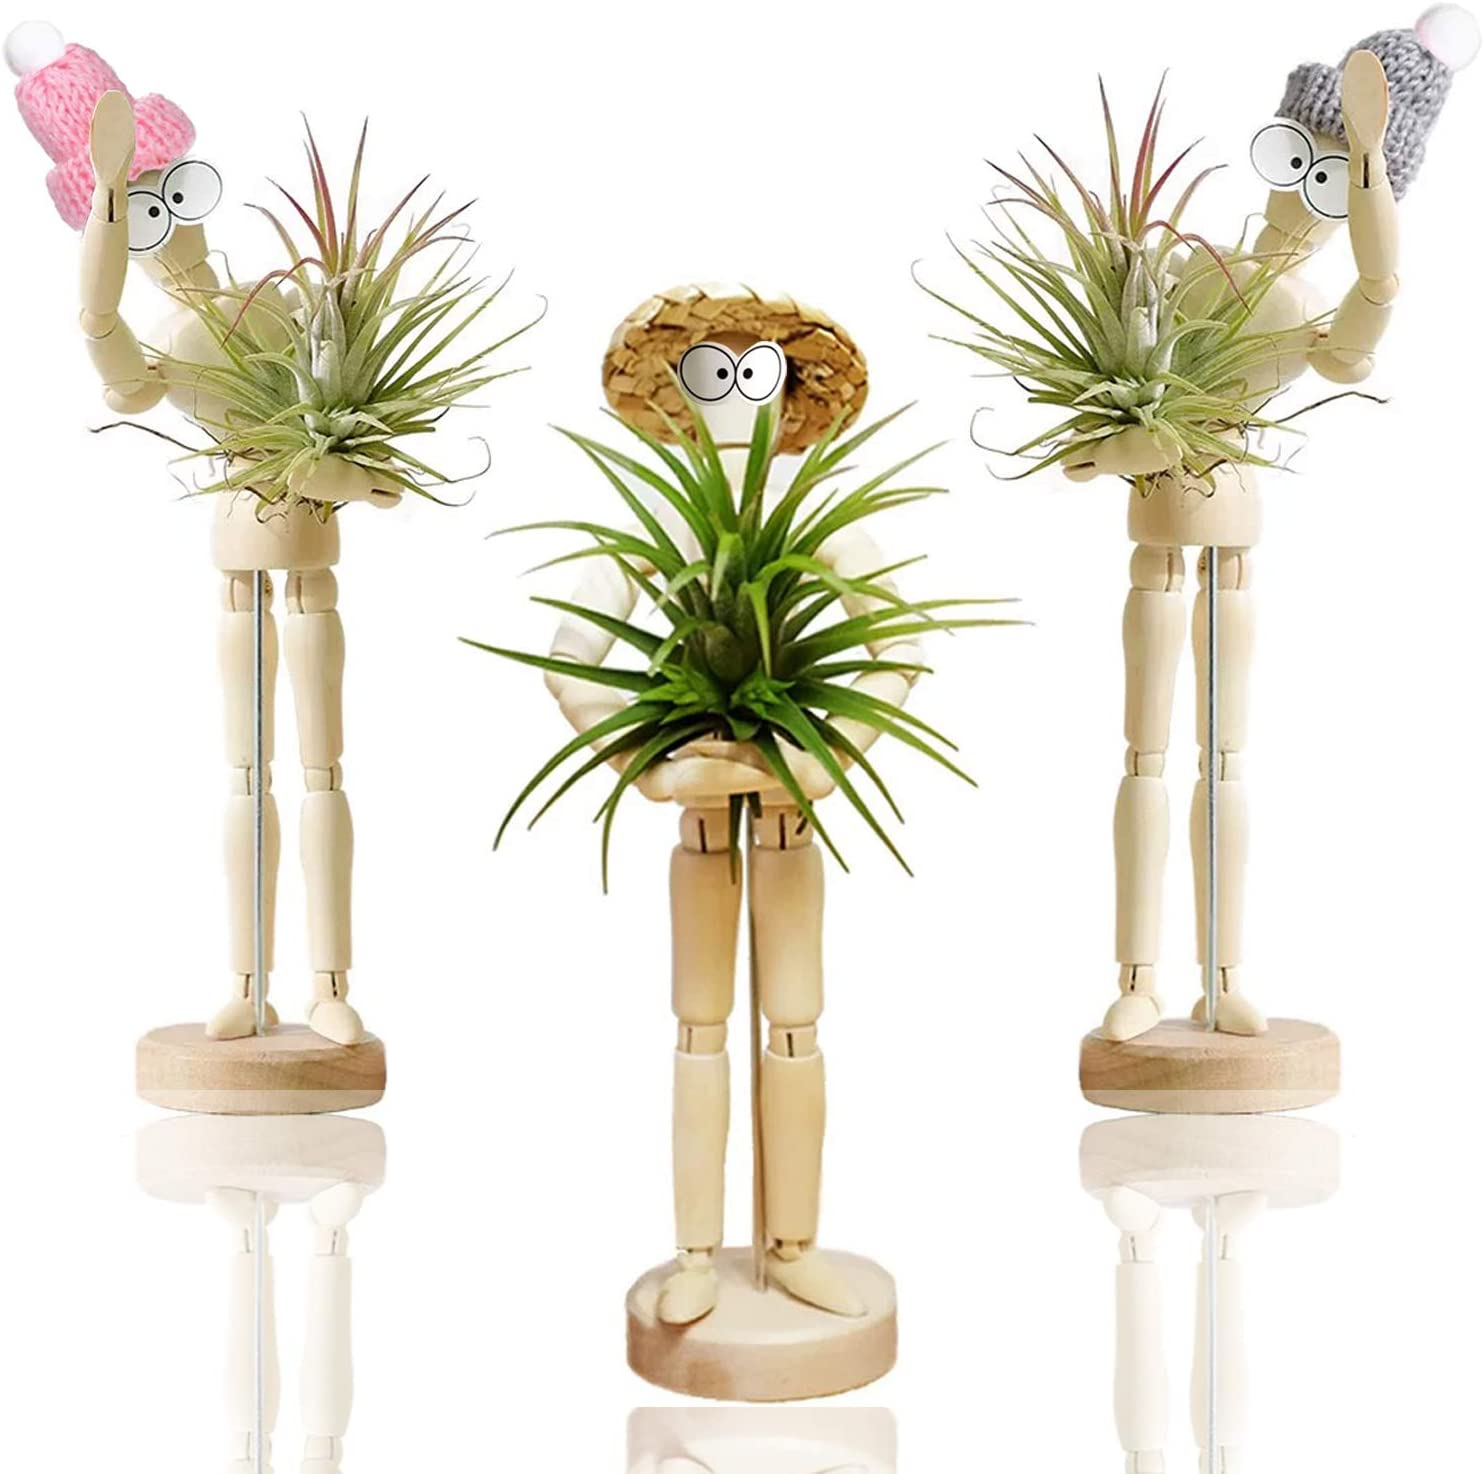 Air Pineapple Soilless Plants Indoor Bracket Desktop Purification Potted Pla YAN